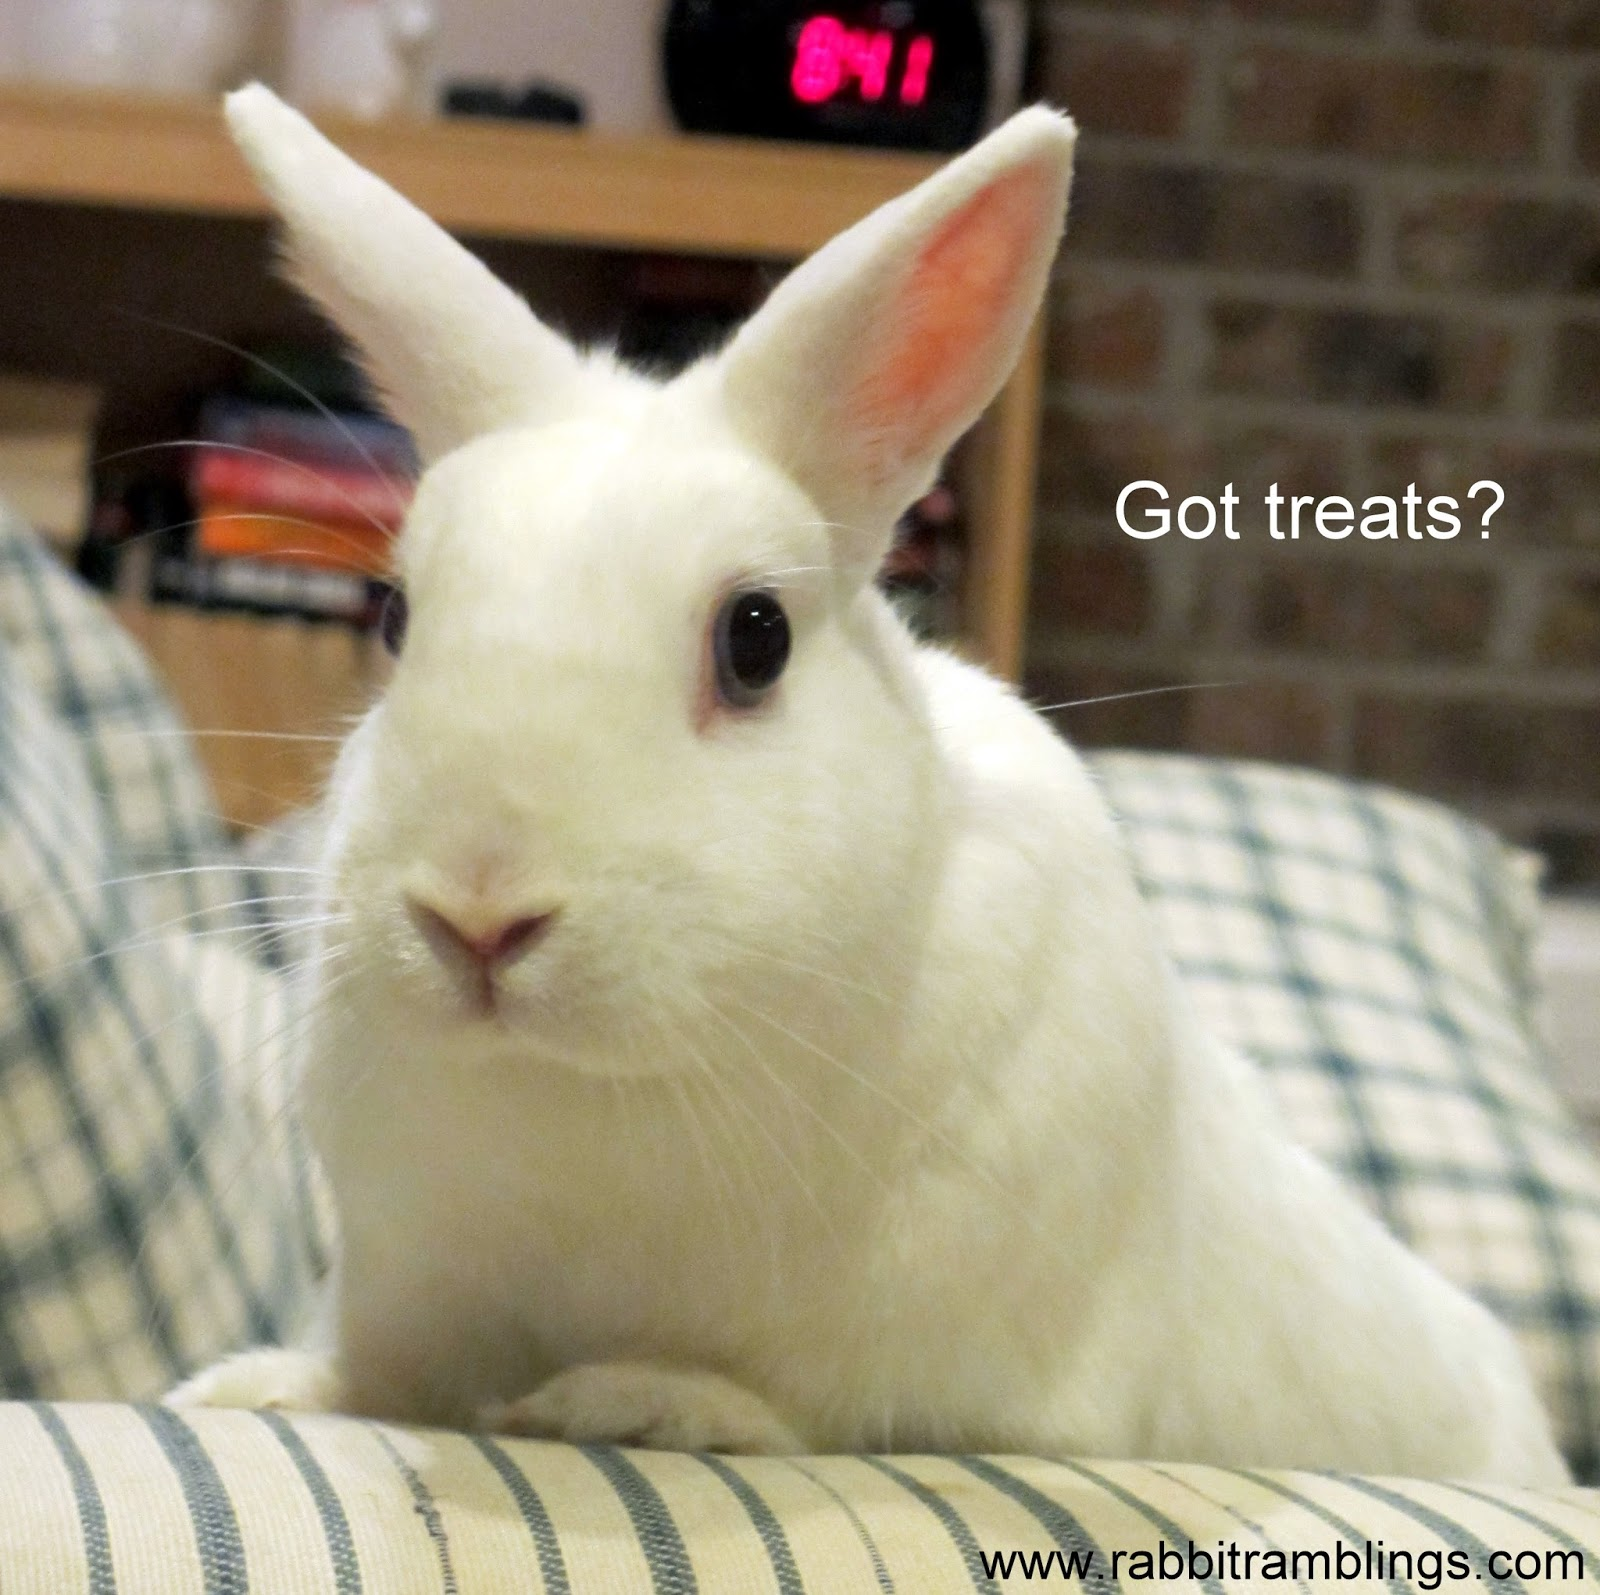 Funny rabbit funny rabbit pictures pictures of rabbits funny - Funny Rabbit Funny Rabbit Pictures Pictures Of Rabbits Funny 56